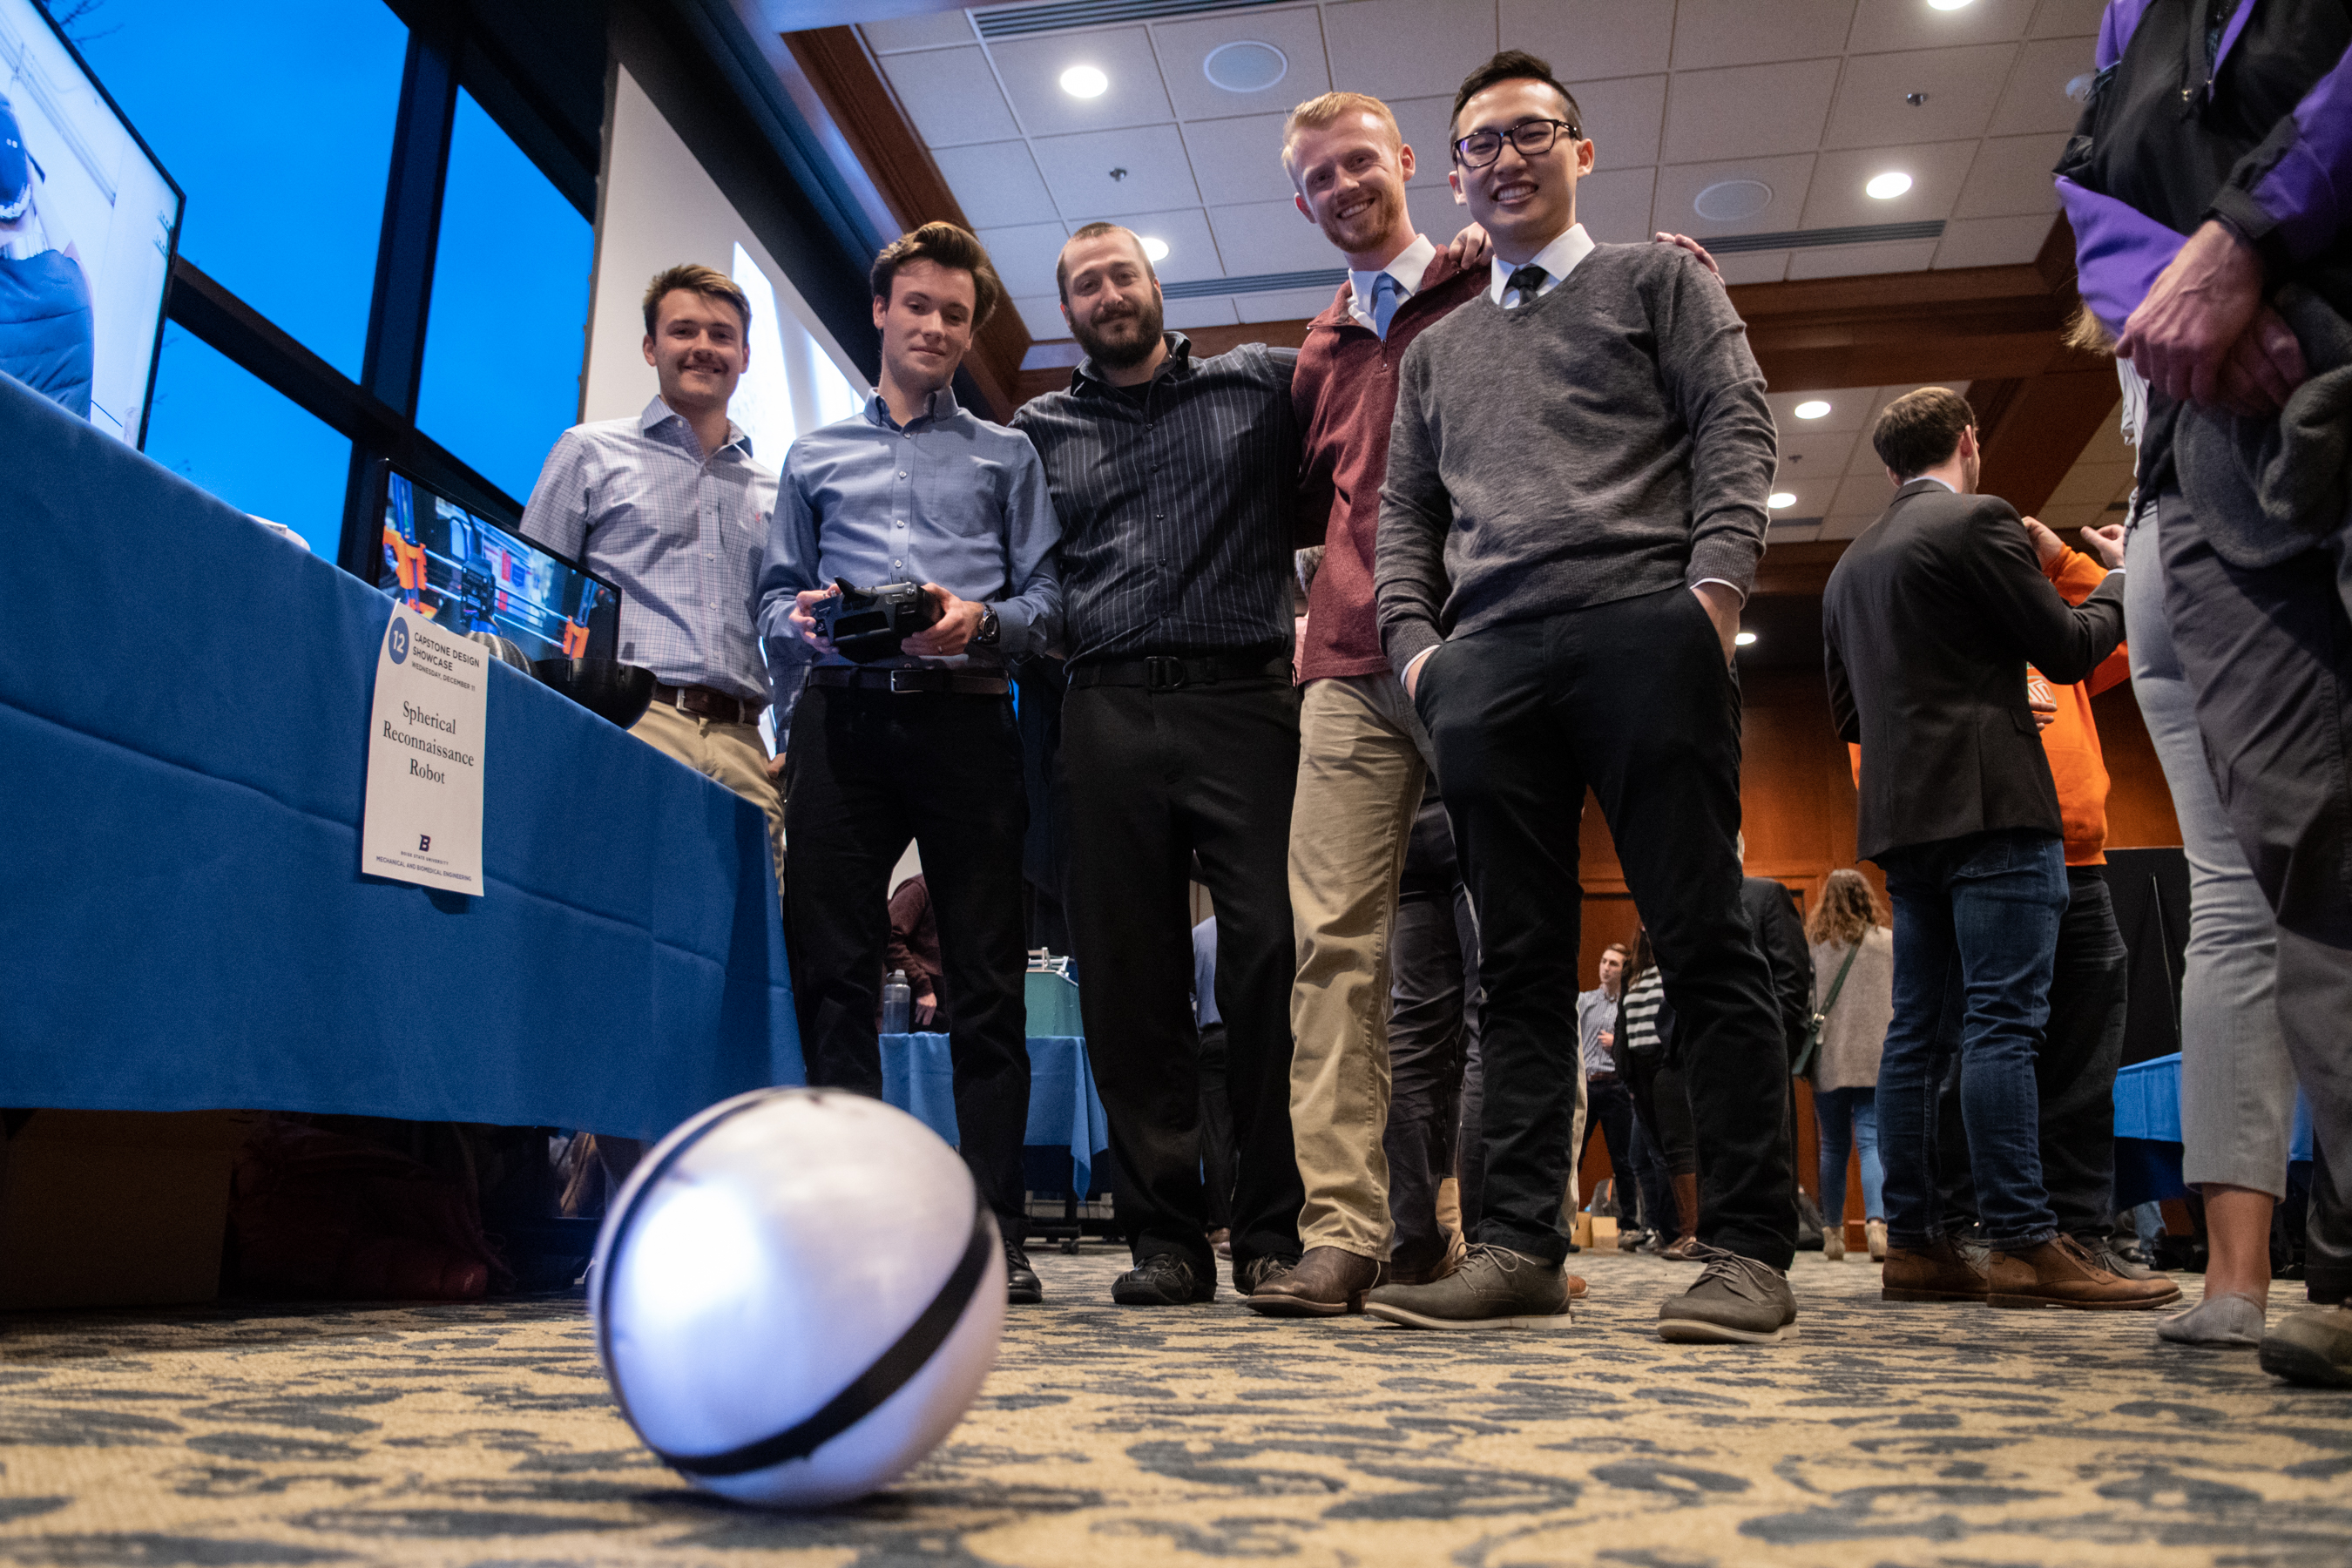 Team of students look down at spherical robot on ground